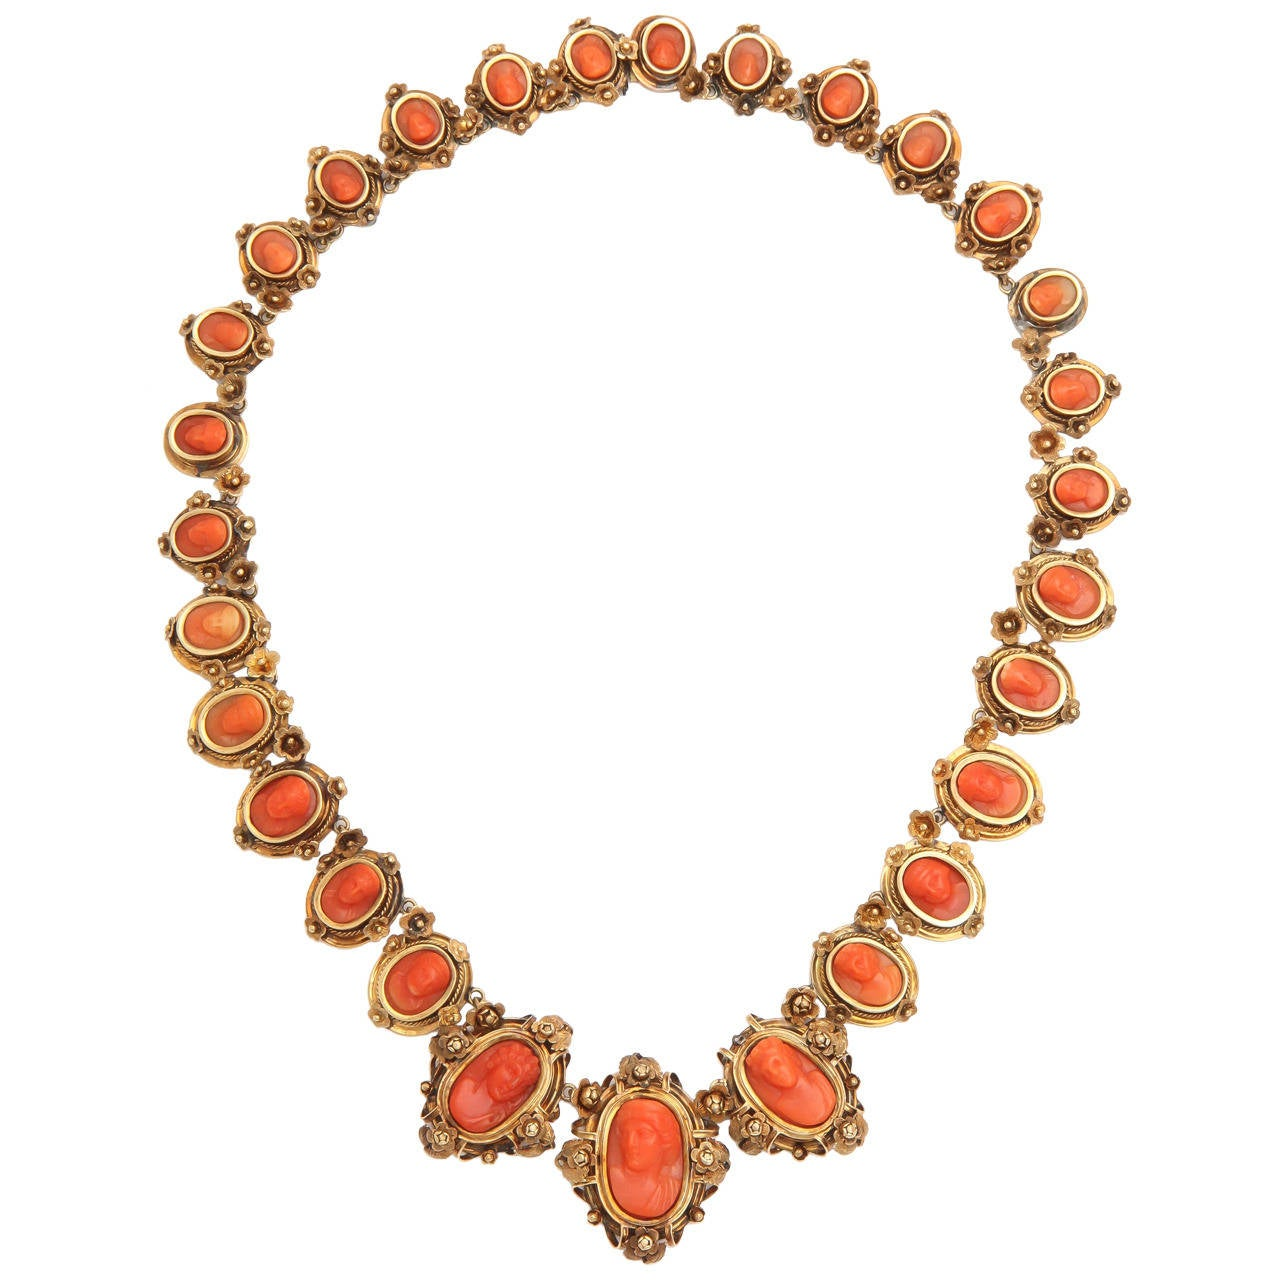 1870s Carved Coral Gold Link Necklace For Sale 5